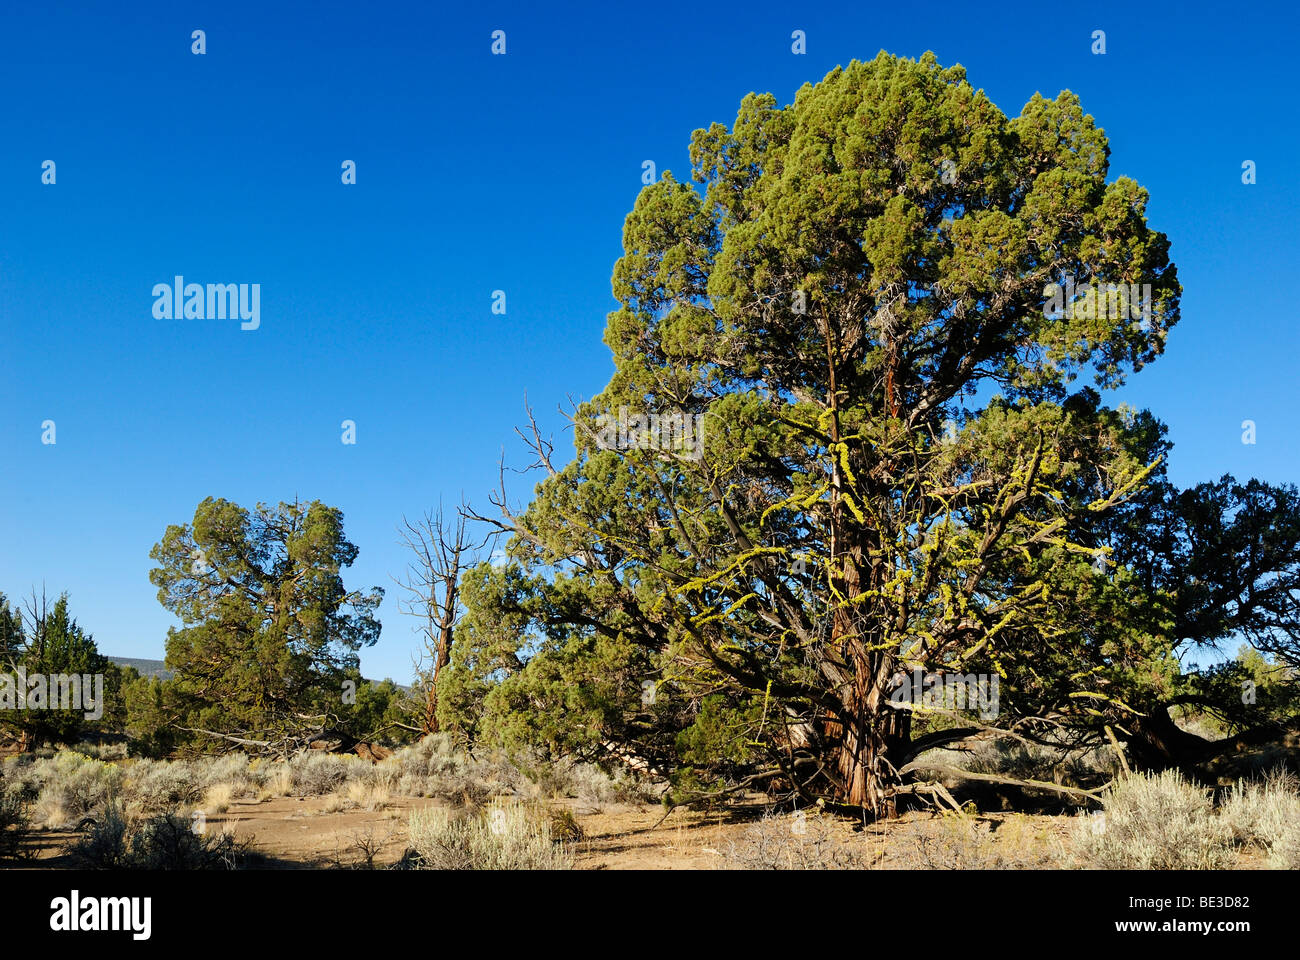 1000 Jahre alter Wacholder Baum, Western Juniper in den Lavafeldern des Ancient Juniper Trail, Badlands Wilderness - Stock Image